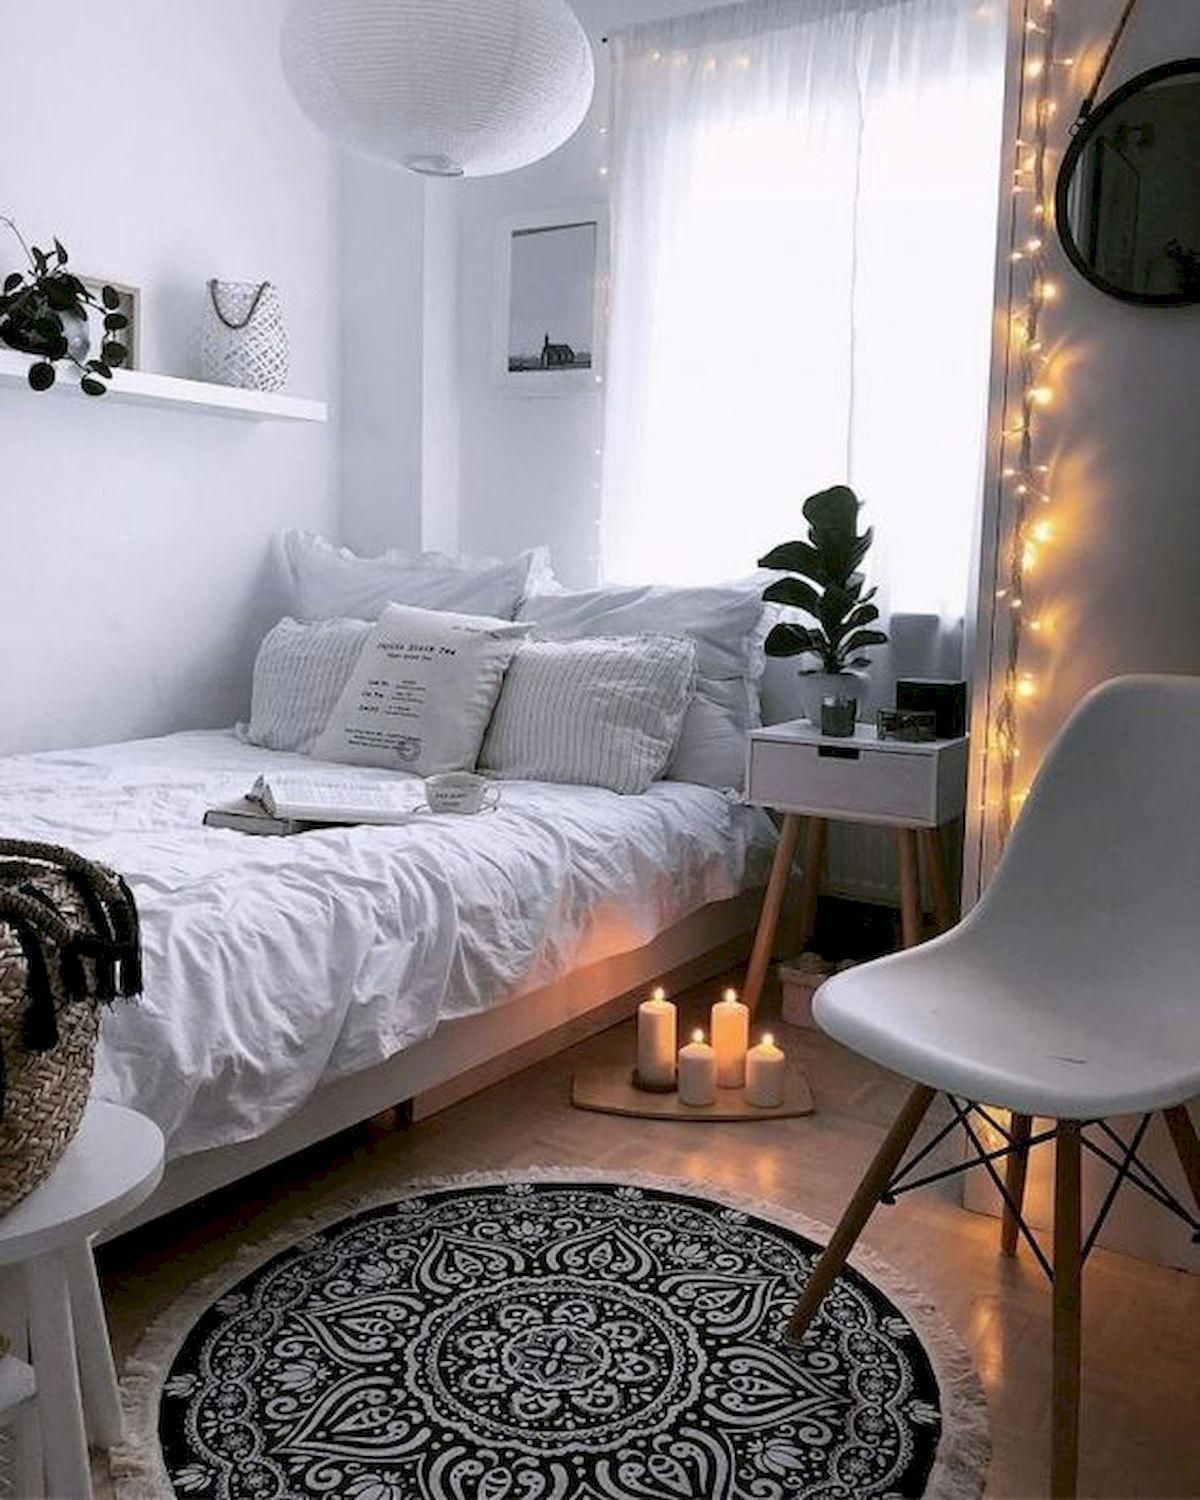 Bedding Sets California King Size Bedlinenstoresnearme Id 6220371616 Small Apartment Bedrooms College Bedroom Decor Apartment Bedroom Design